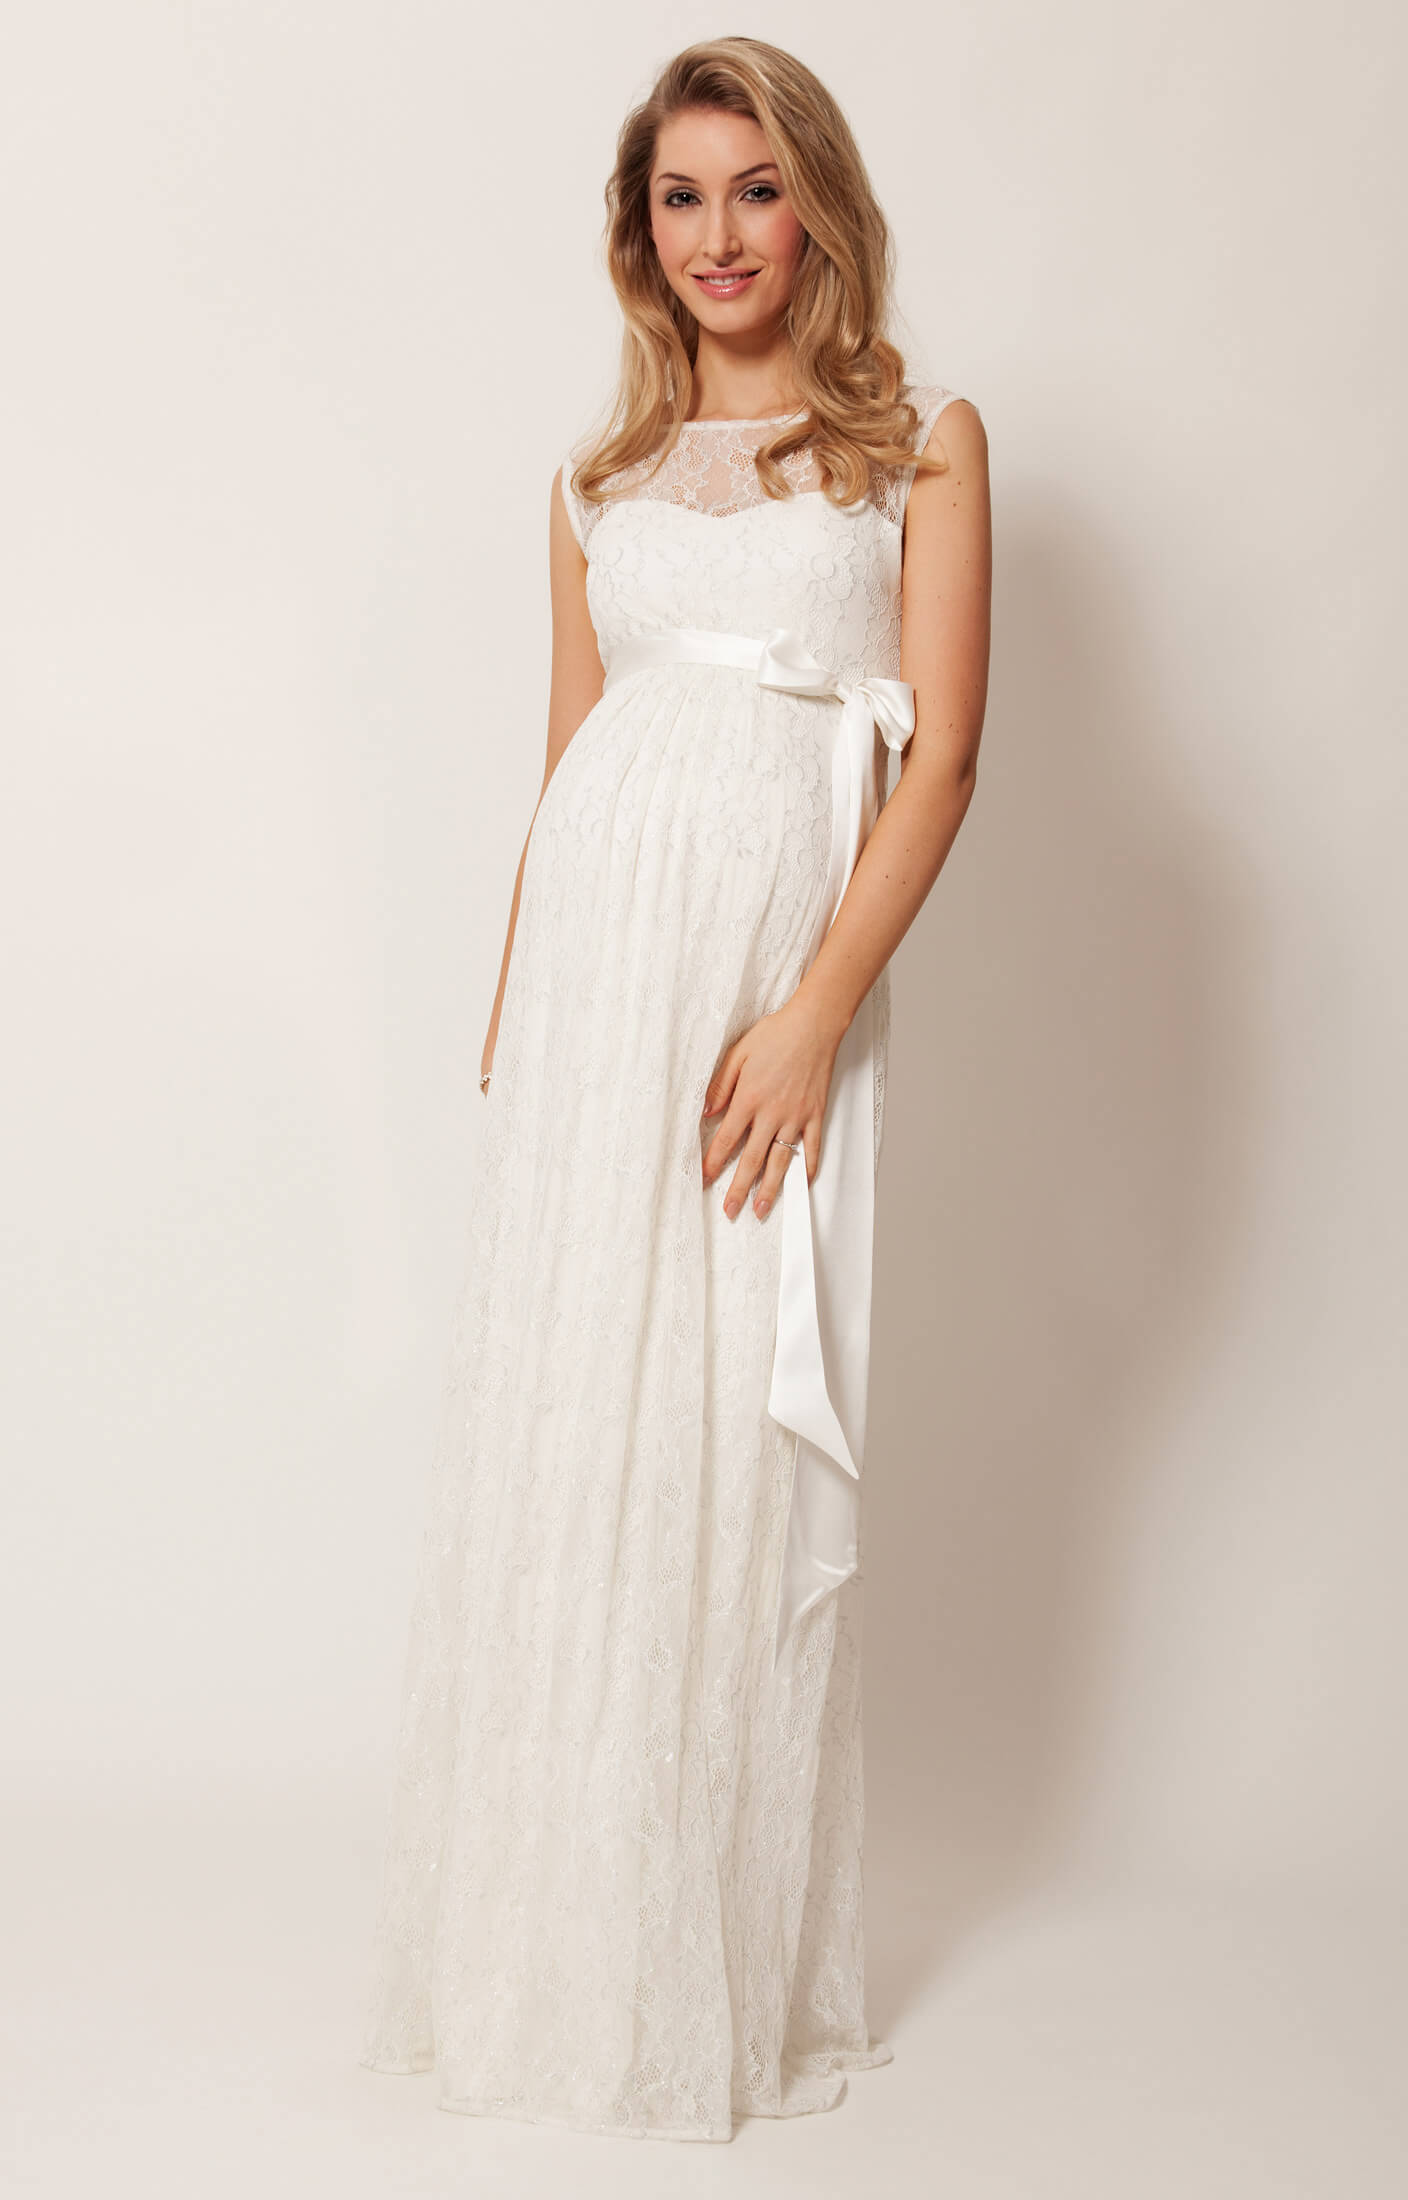 Ellie maternity wedding gown long ivory maternity wedding ellie maternity wedding gown long ivory maternity wedding dresses evening wear and party clothes by tiffany rose ombrellifo Images